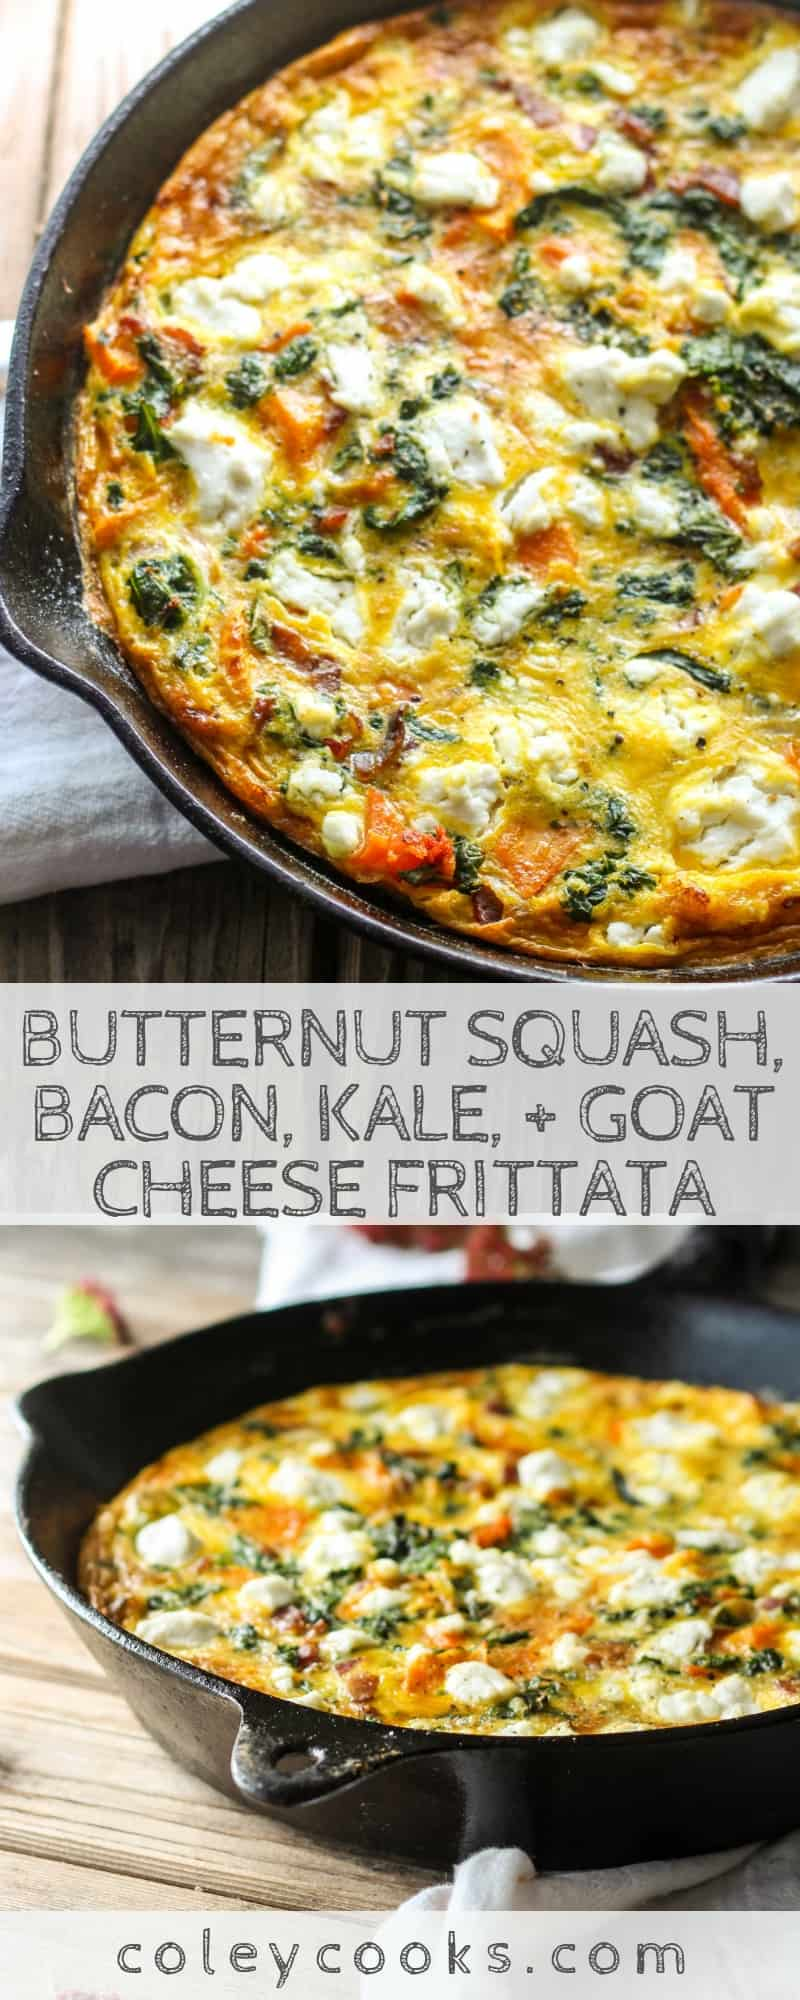 Butternut Squash, Bacon, Kale, + Goat Cheese Frittata | Easy frittata recipe with all the best Fall vegetables. Great for breakfast or brunch! #easy #fall #recipe #brunch #breakfast #eggs #frittata #kale #butternut | ColeyCooks.com